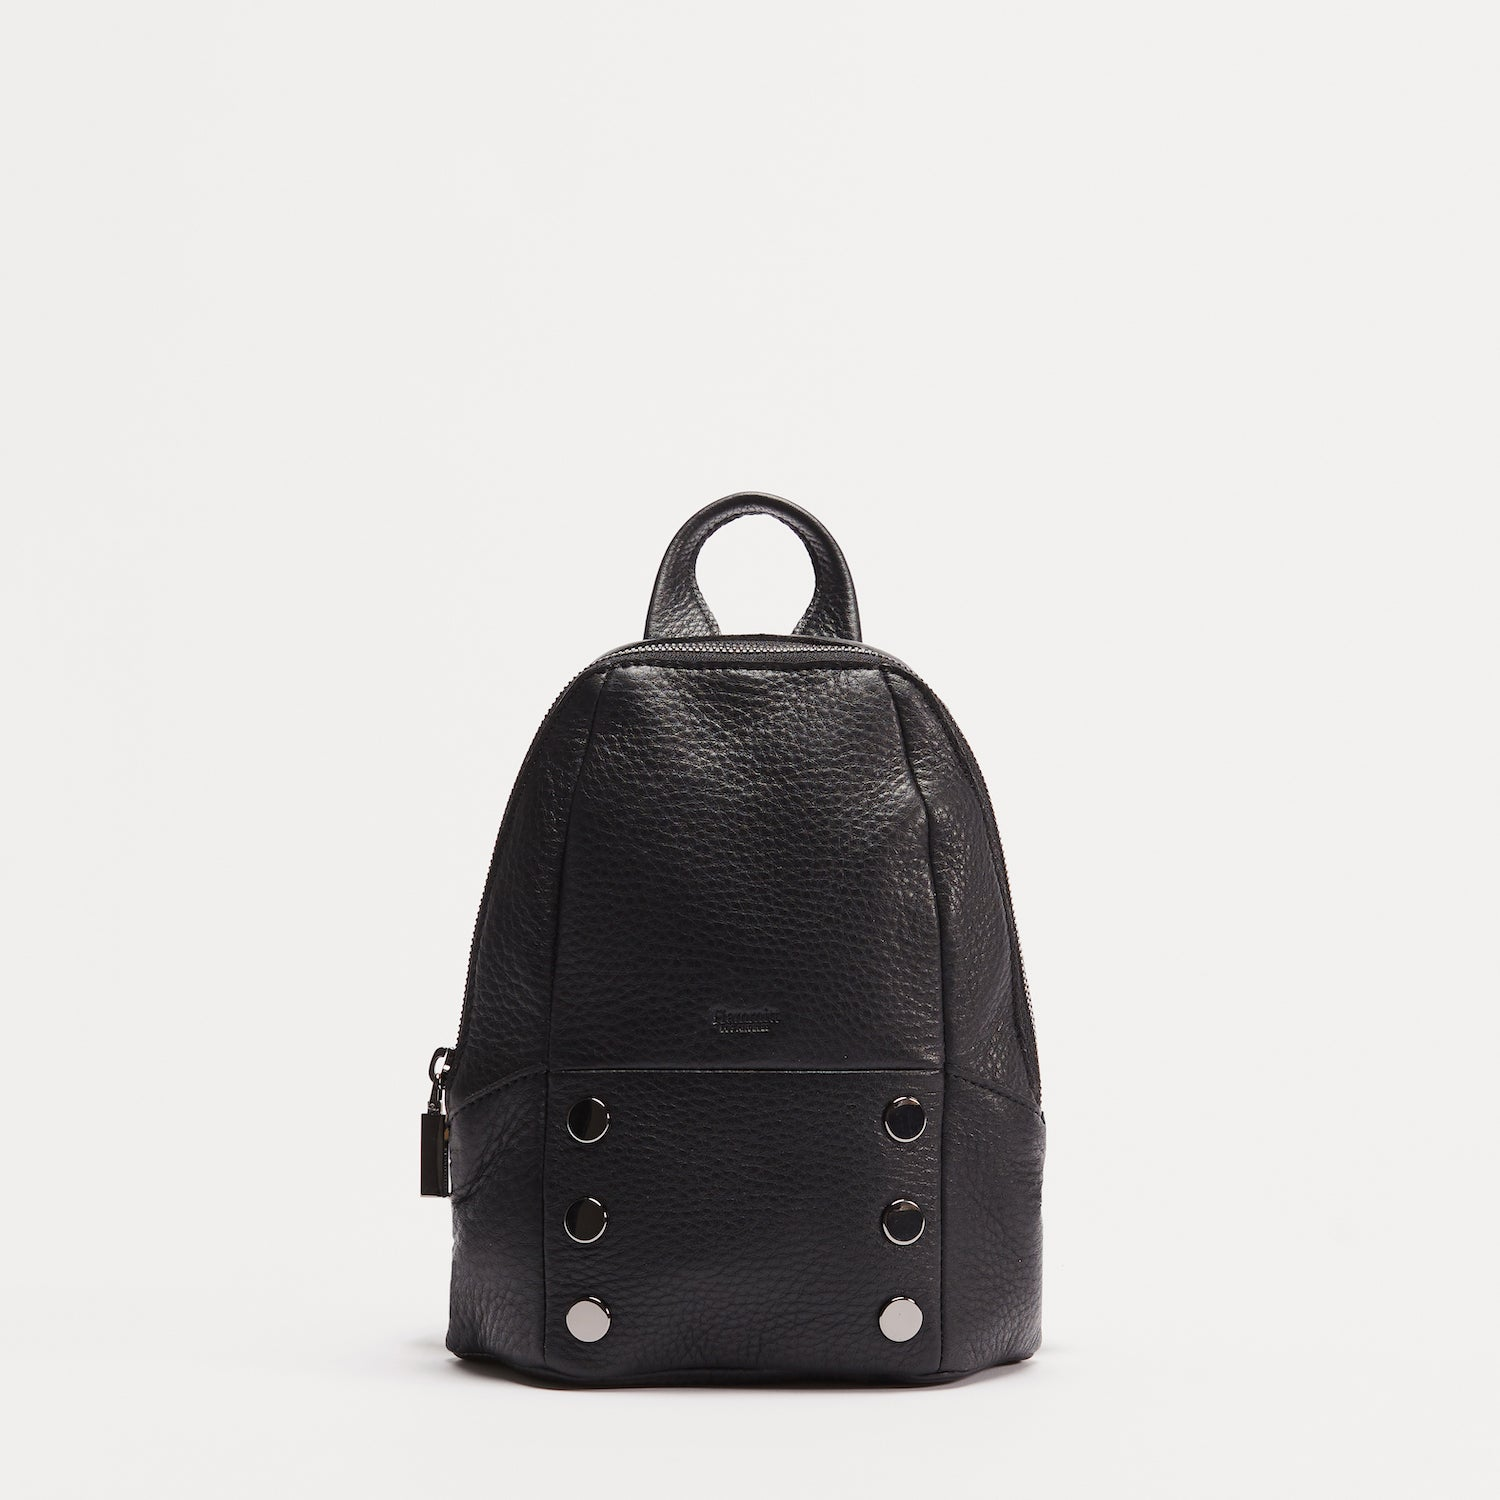 Hunter-2-Sml-Black-Front-View